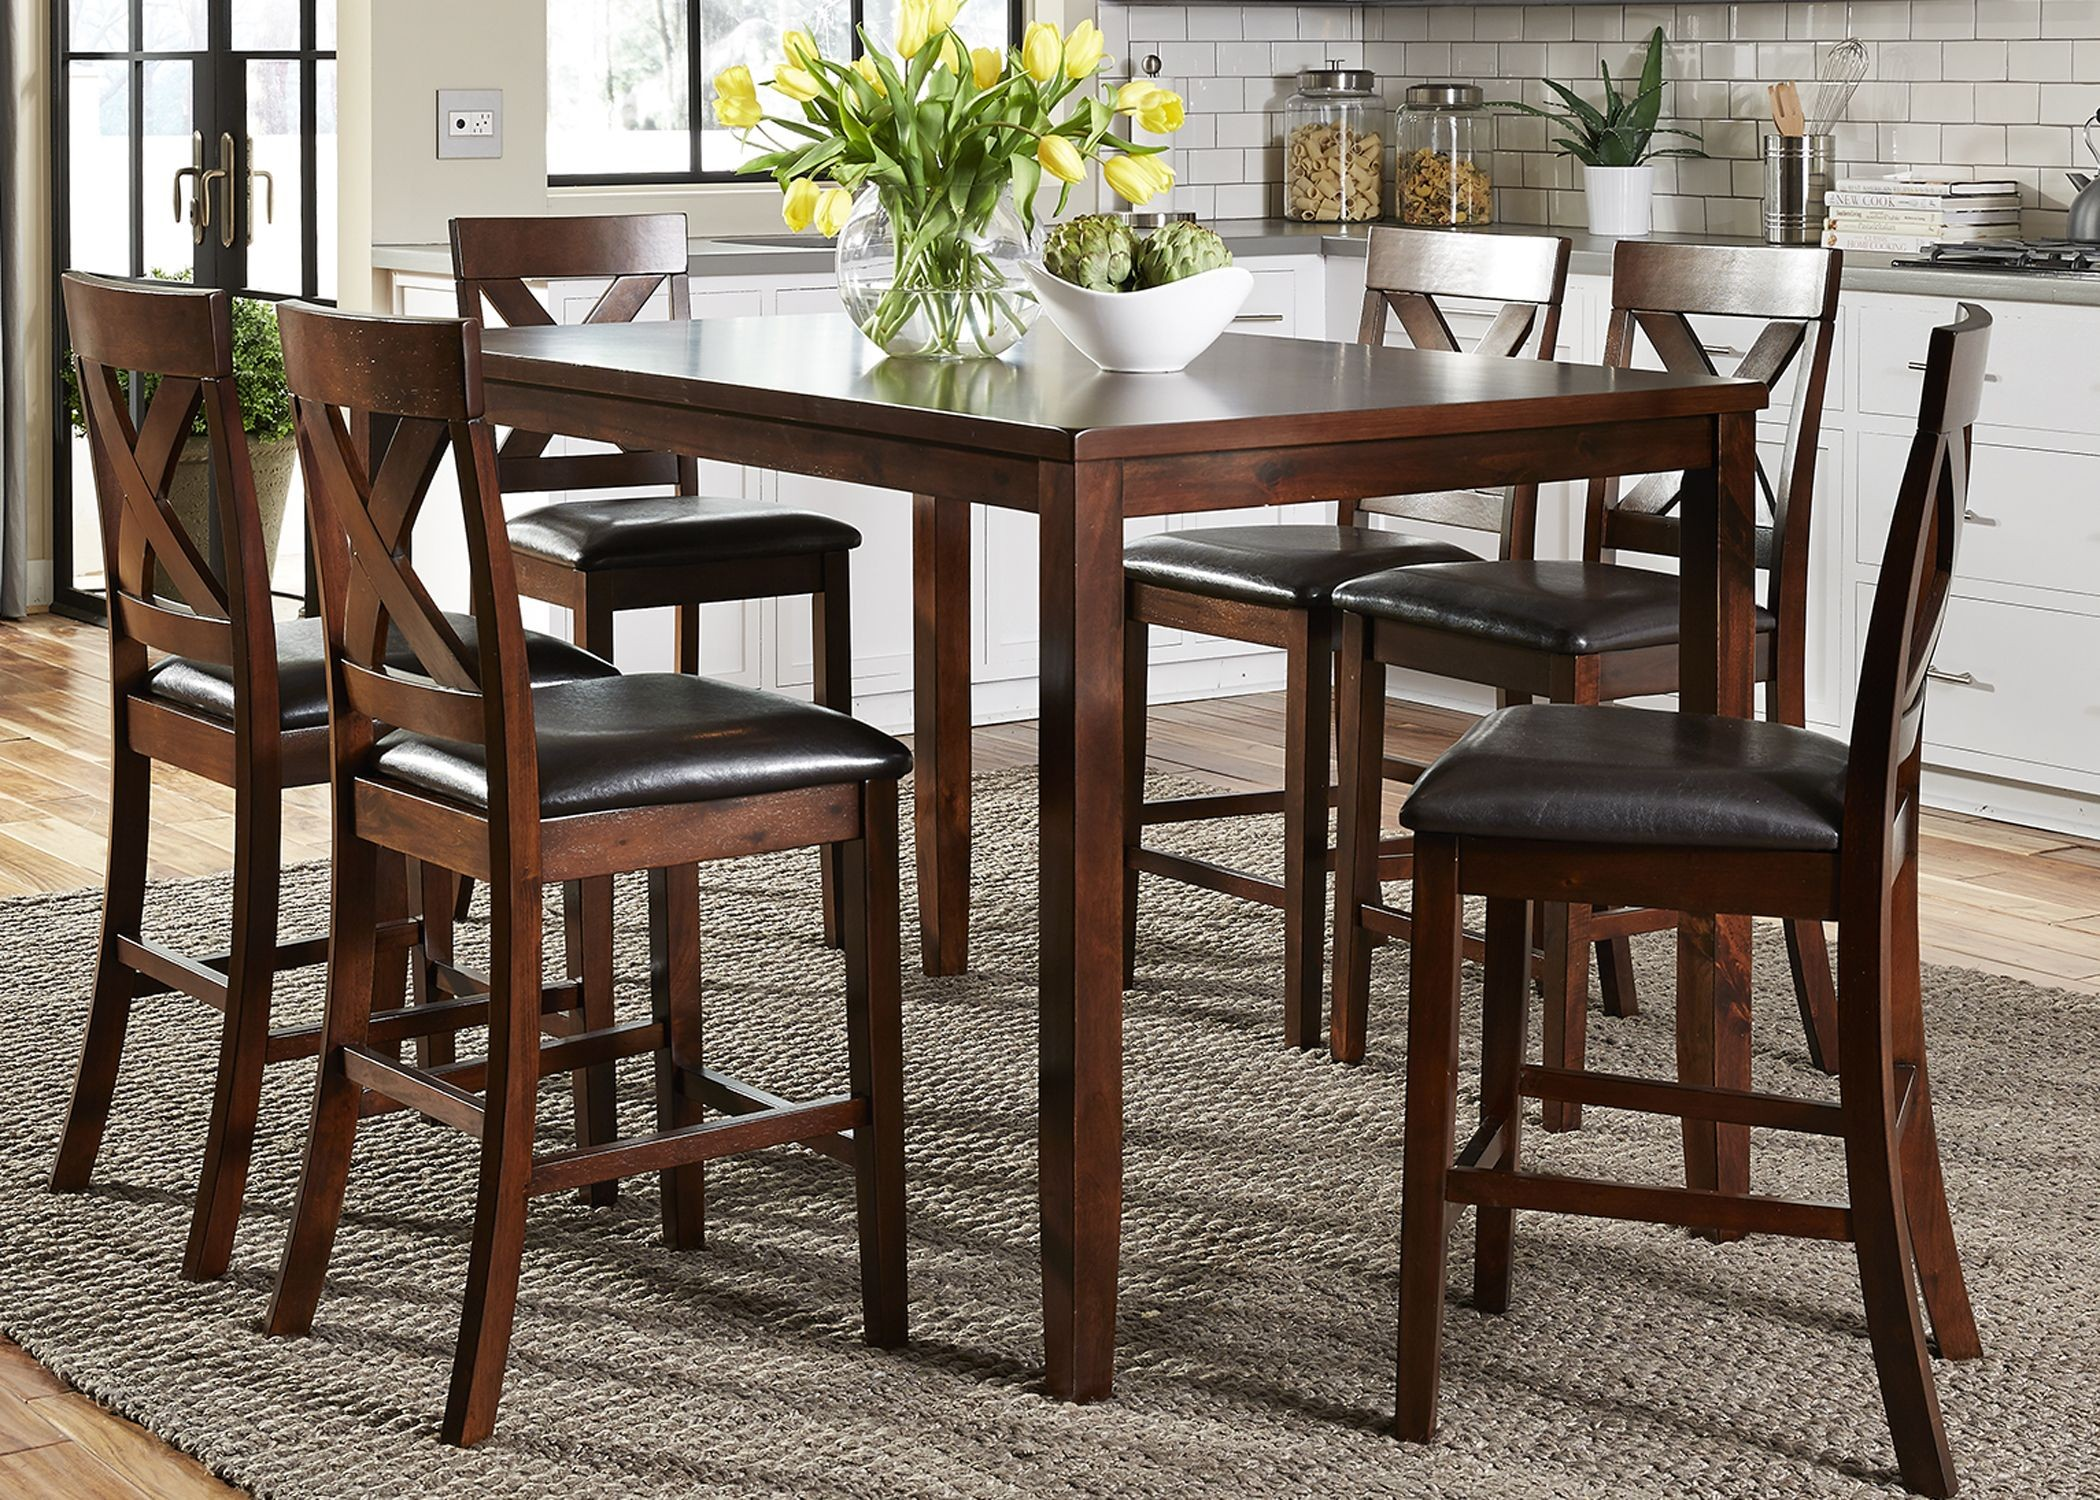 Thornton russet 7 piece gathering dining room set from for 7 piece dining room set